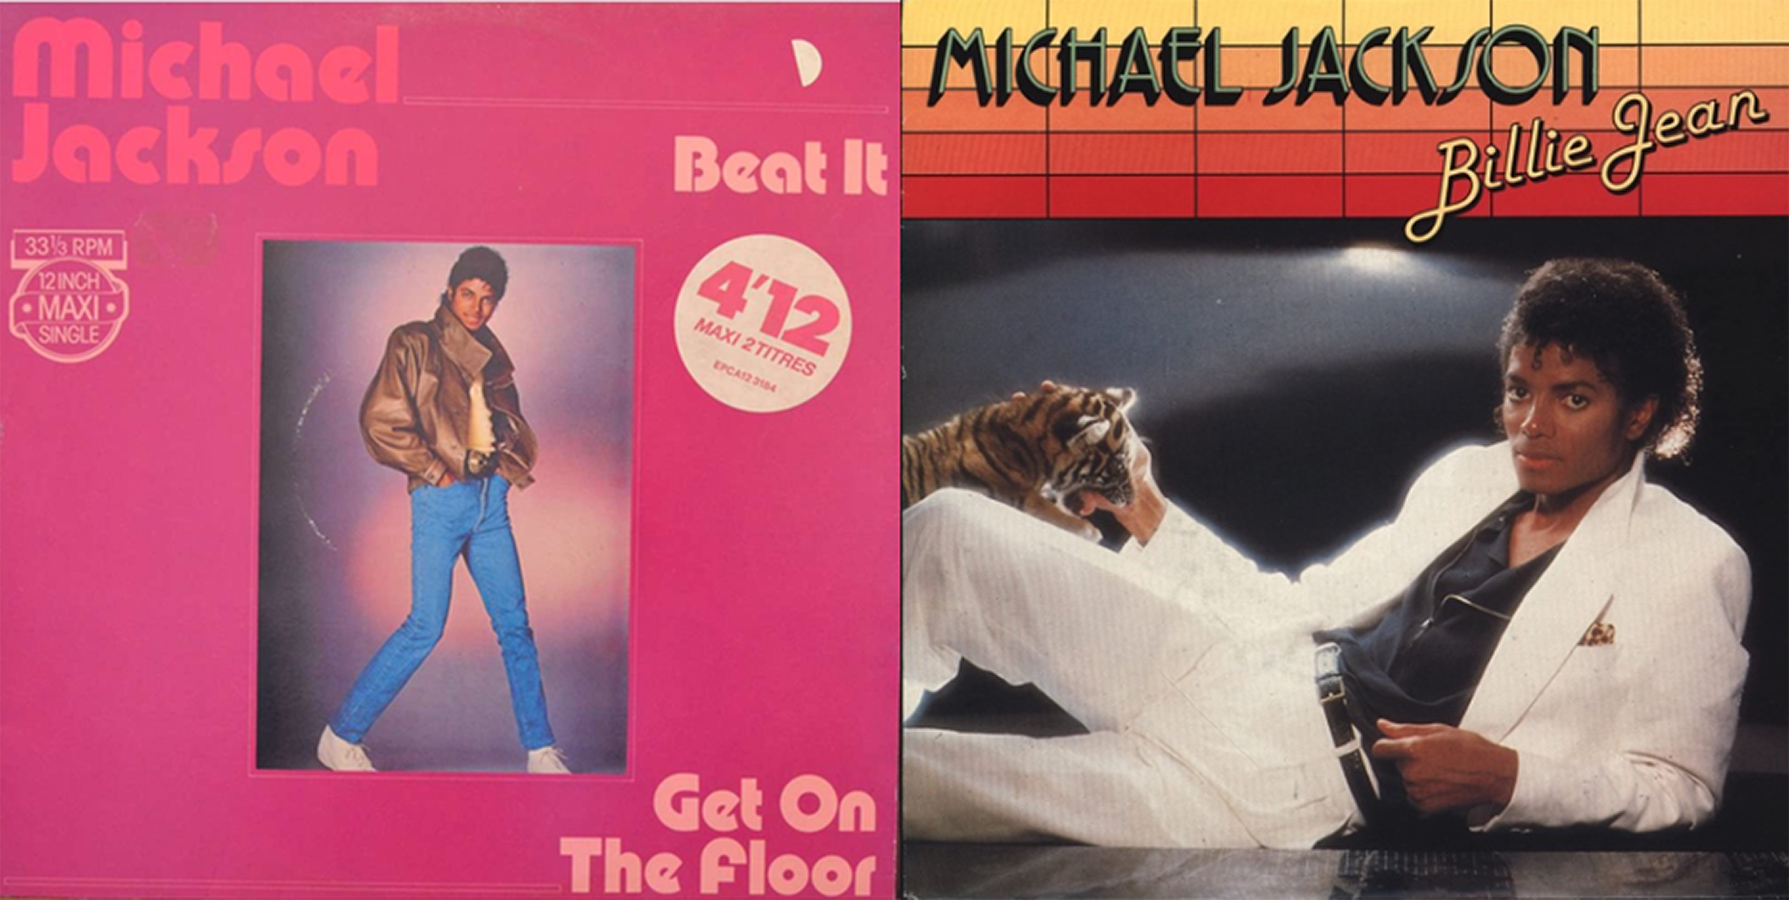 Which MJ Tracks Were Both On The Charts This Week In 1983?